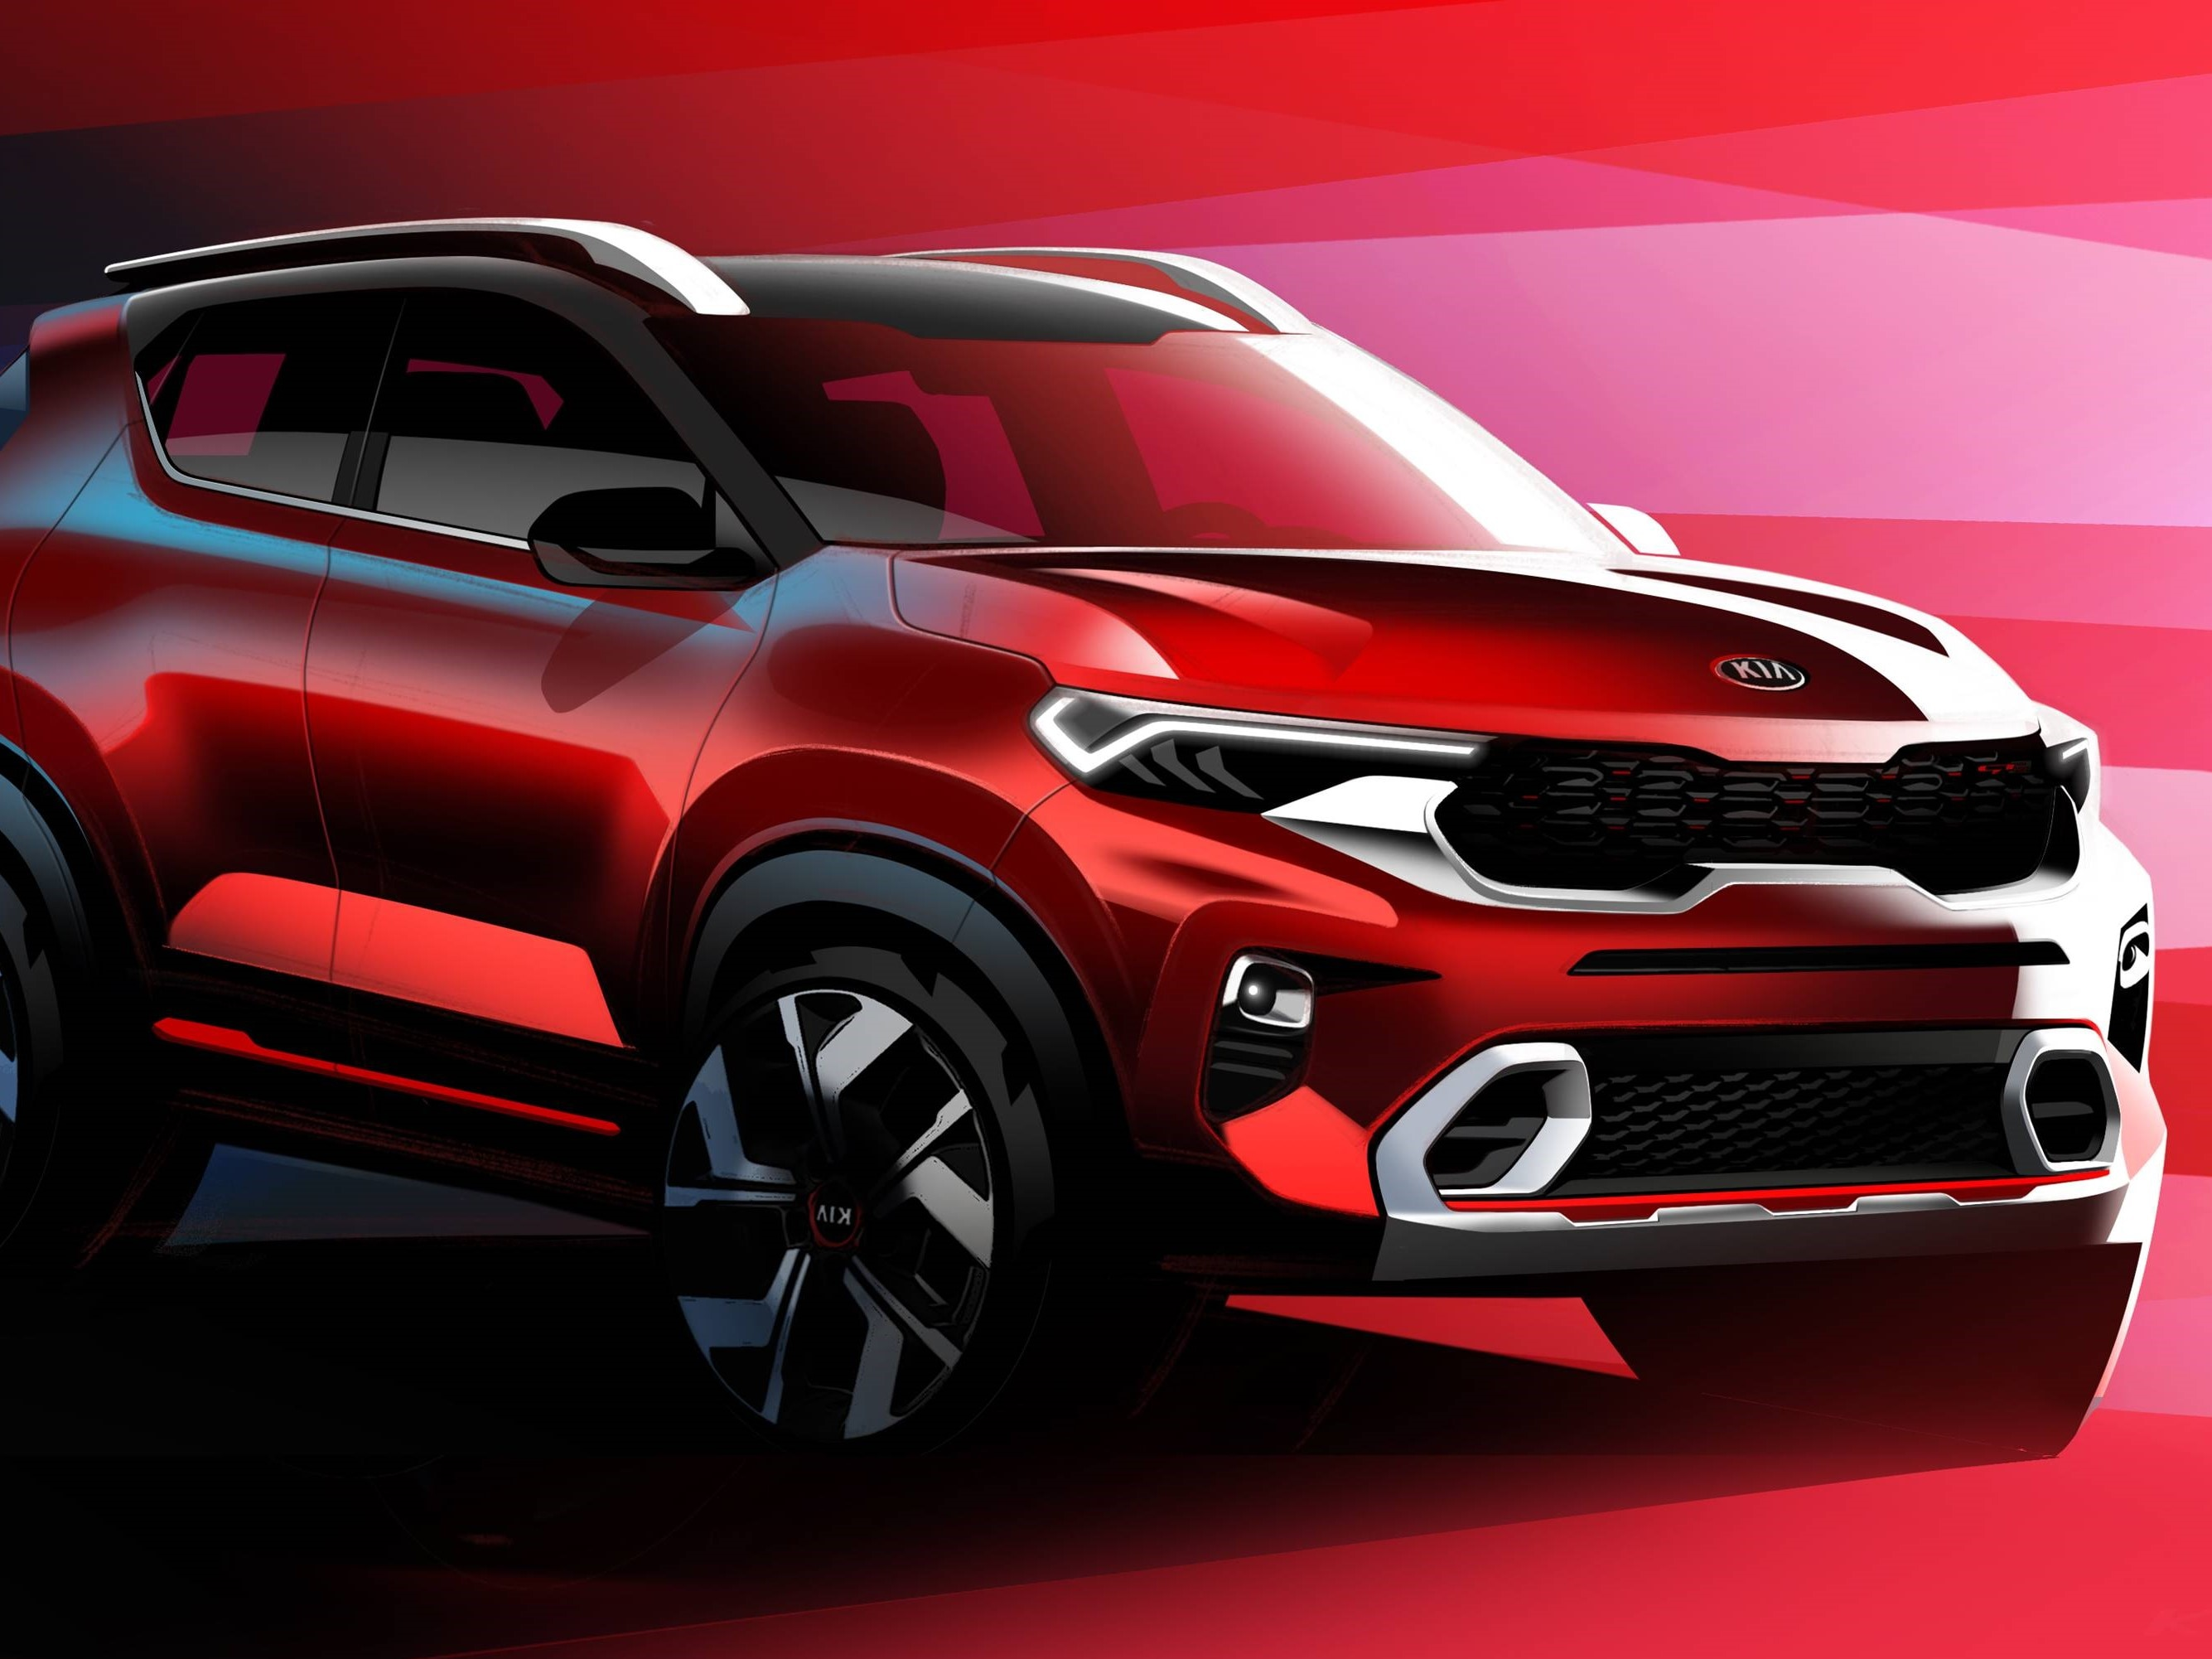 Kia Sonet 5 Things To Know About The Hyundai Venue Rival Zigwheels